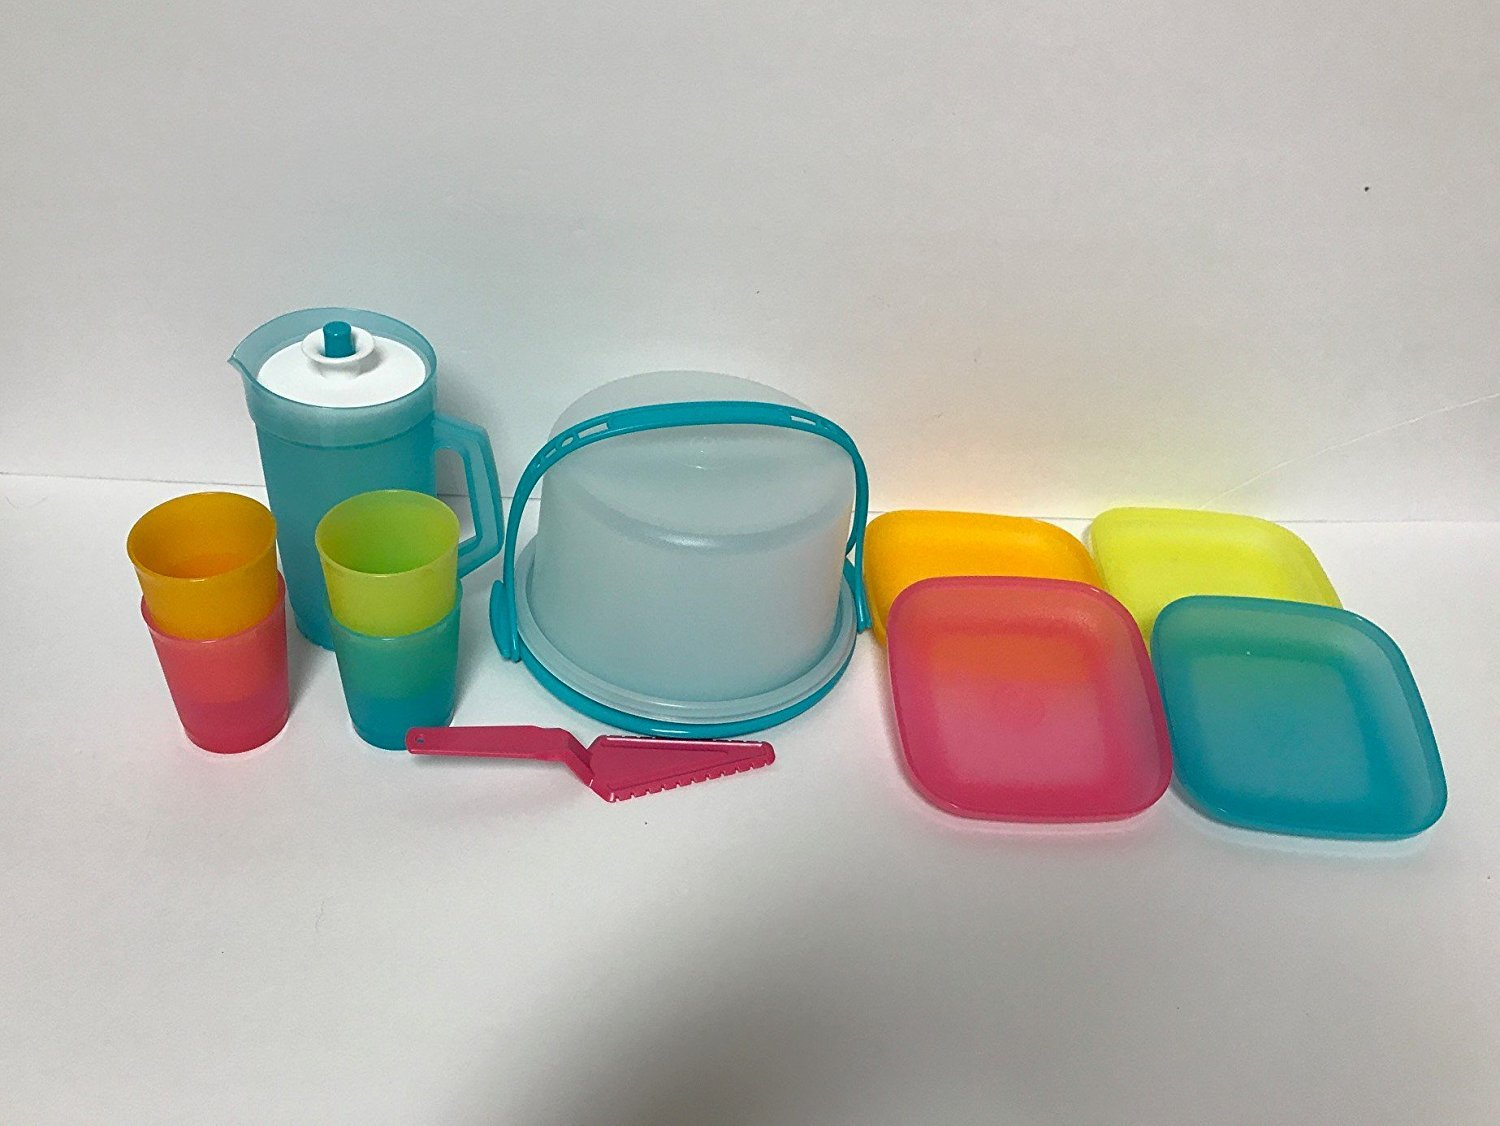 Amazon.com: Tupperware 11-Pc Mini Party Play Set For Kids in Spring ...